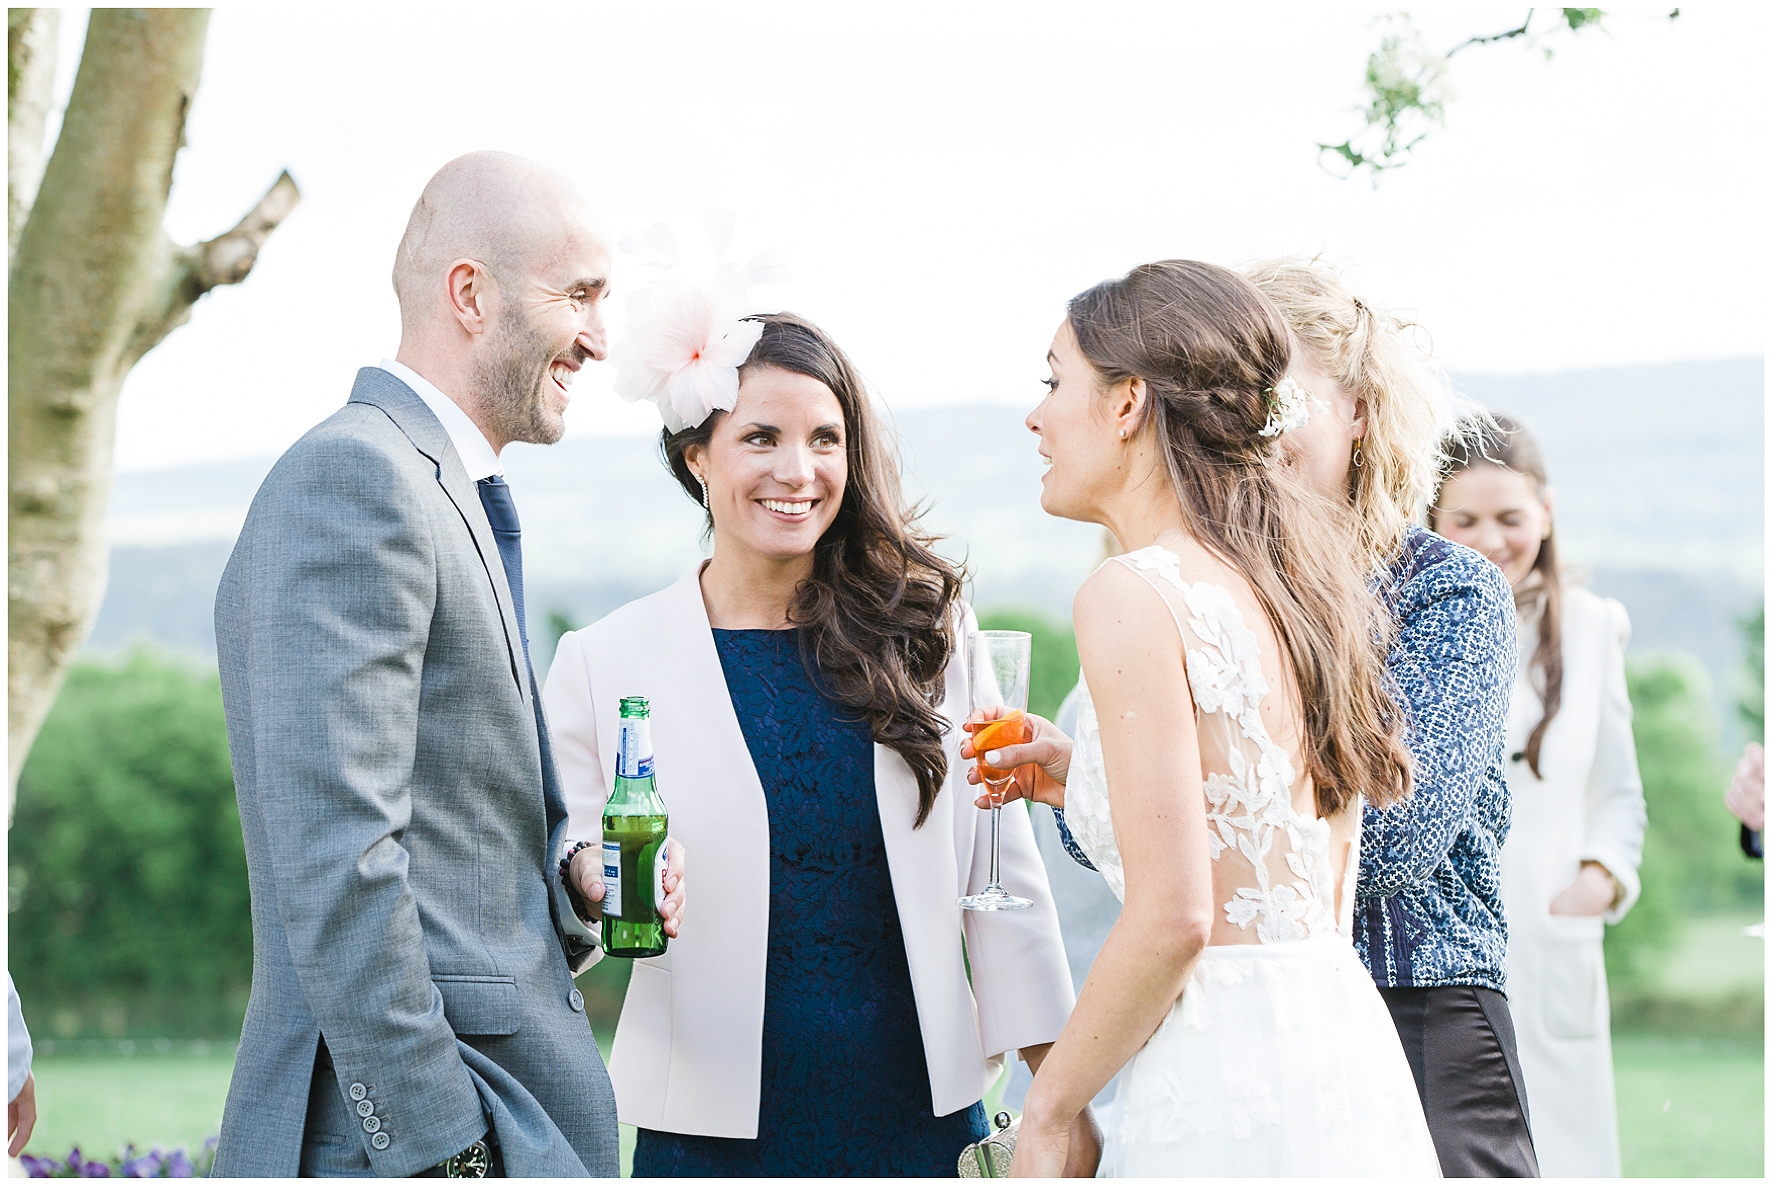 wedding guests during drinks reception with bride